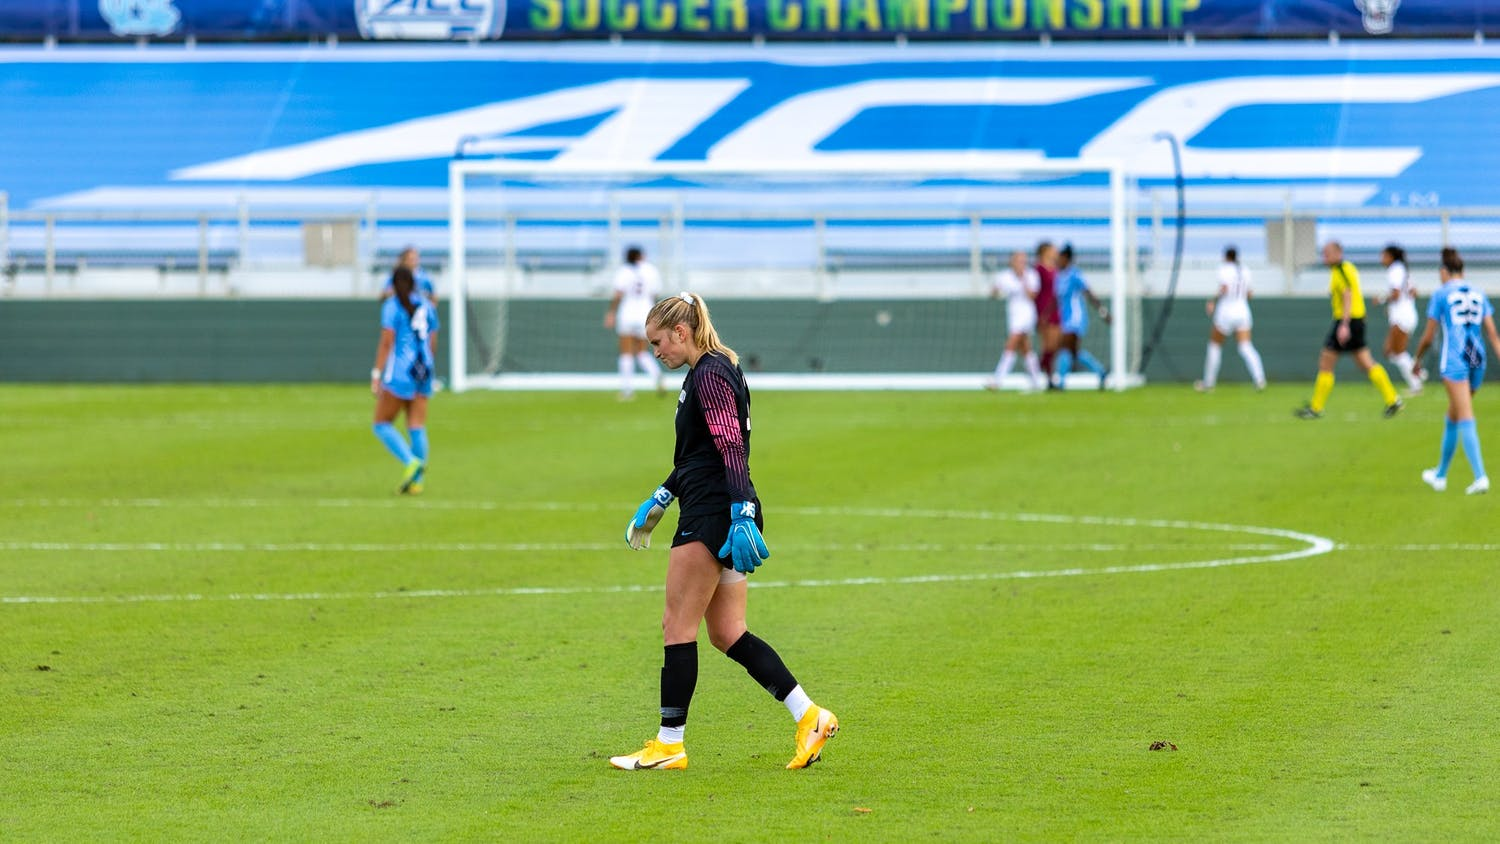 UNC junior goalkeeper Claudia Dickey (0) walks across the field in Sahlen's Stadium in Cary, N.C. on Sunday, Nov. 15, 2020. FSU beat UNC 3-2 to win the ACC championship.